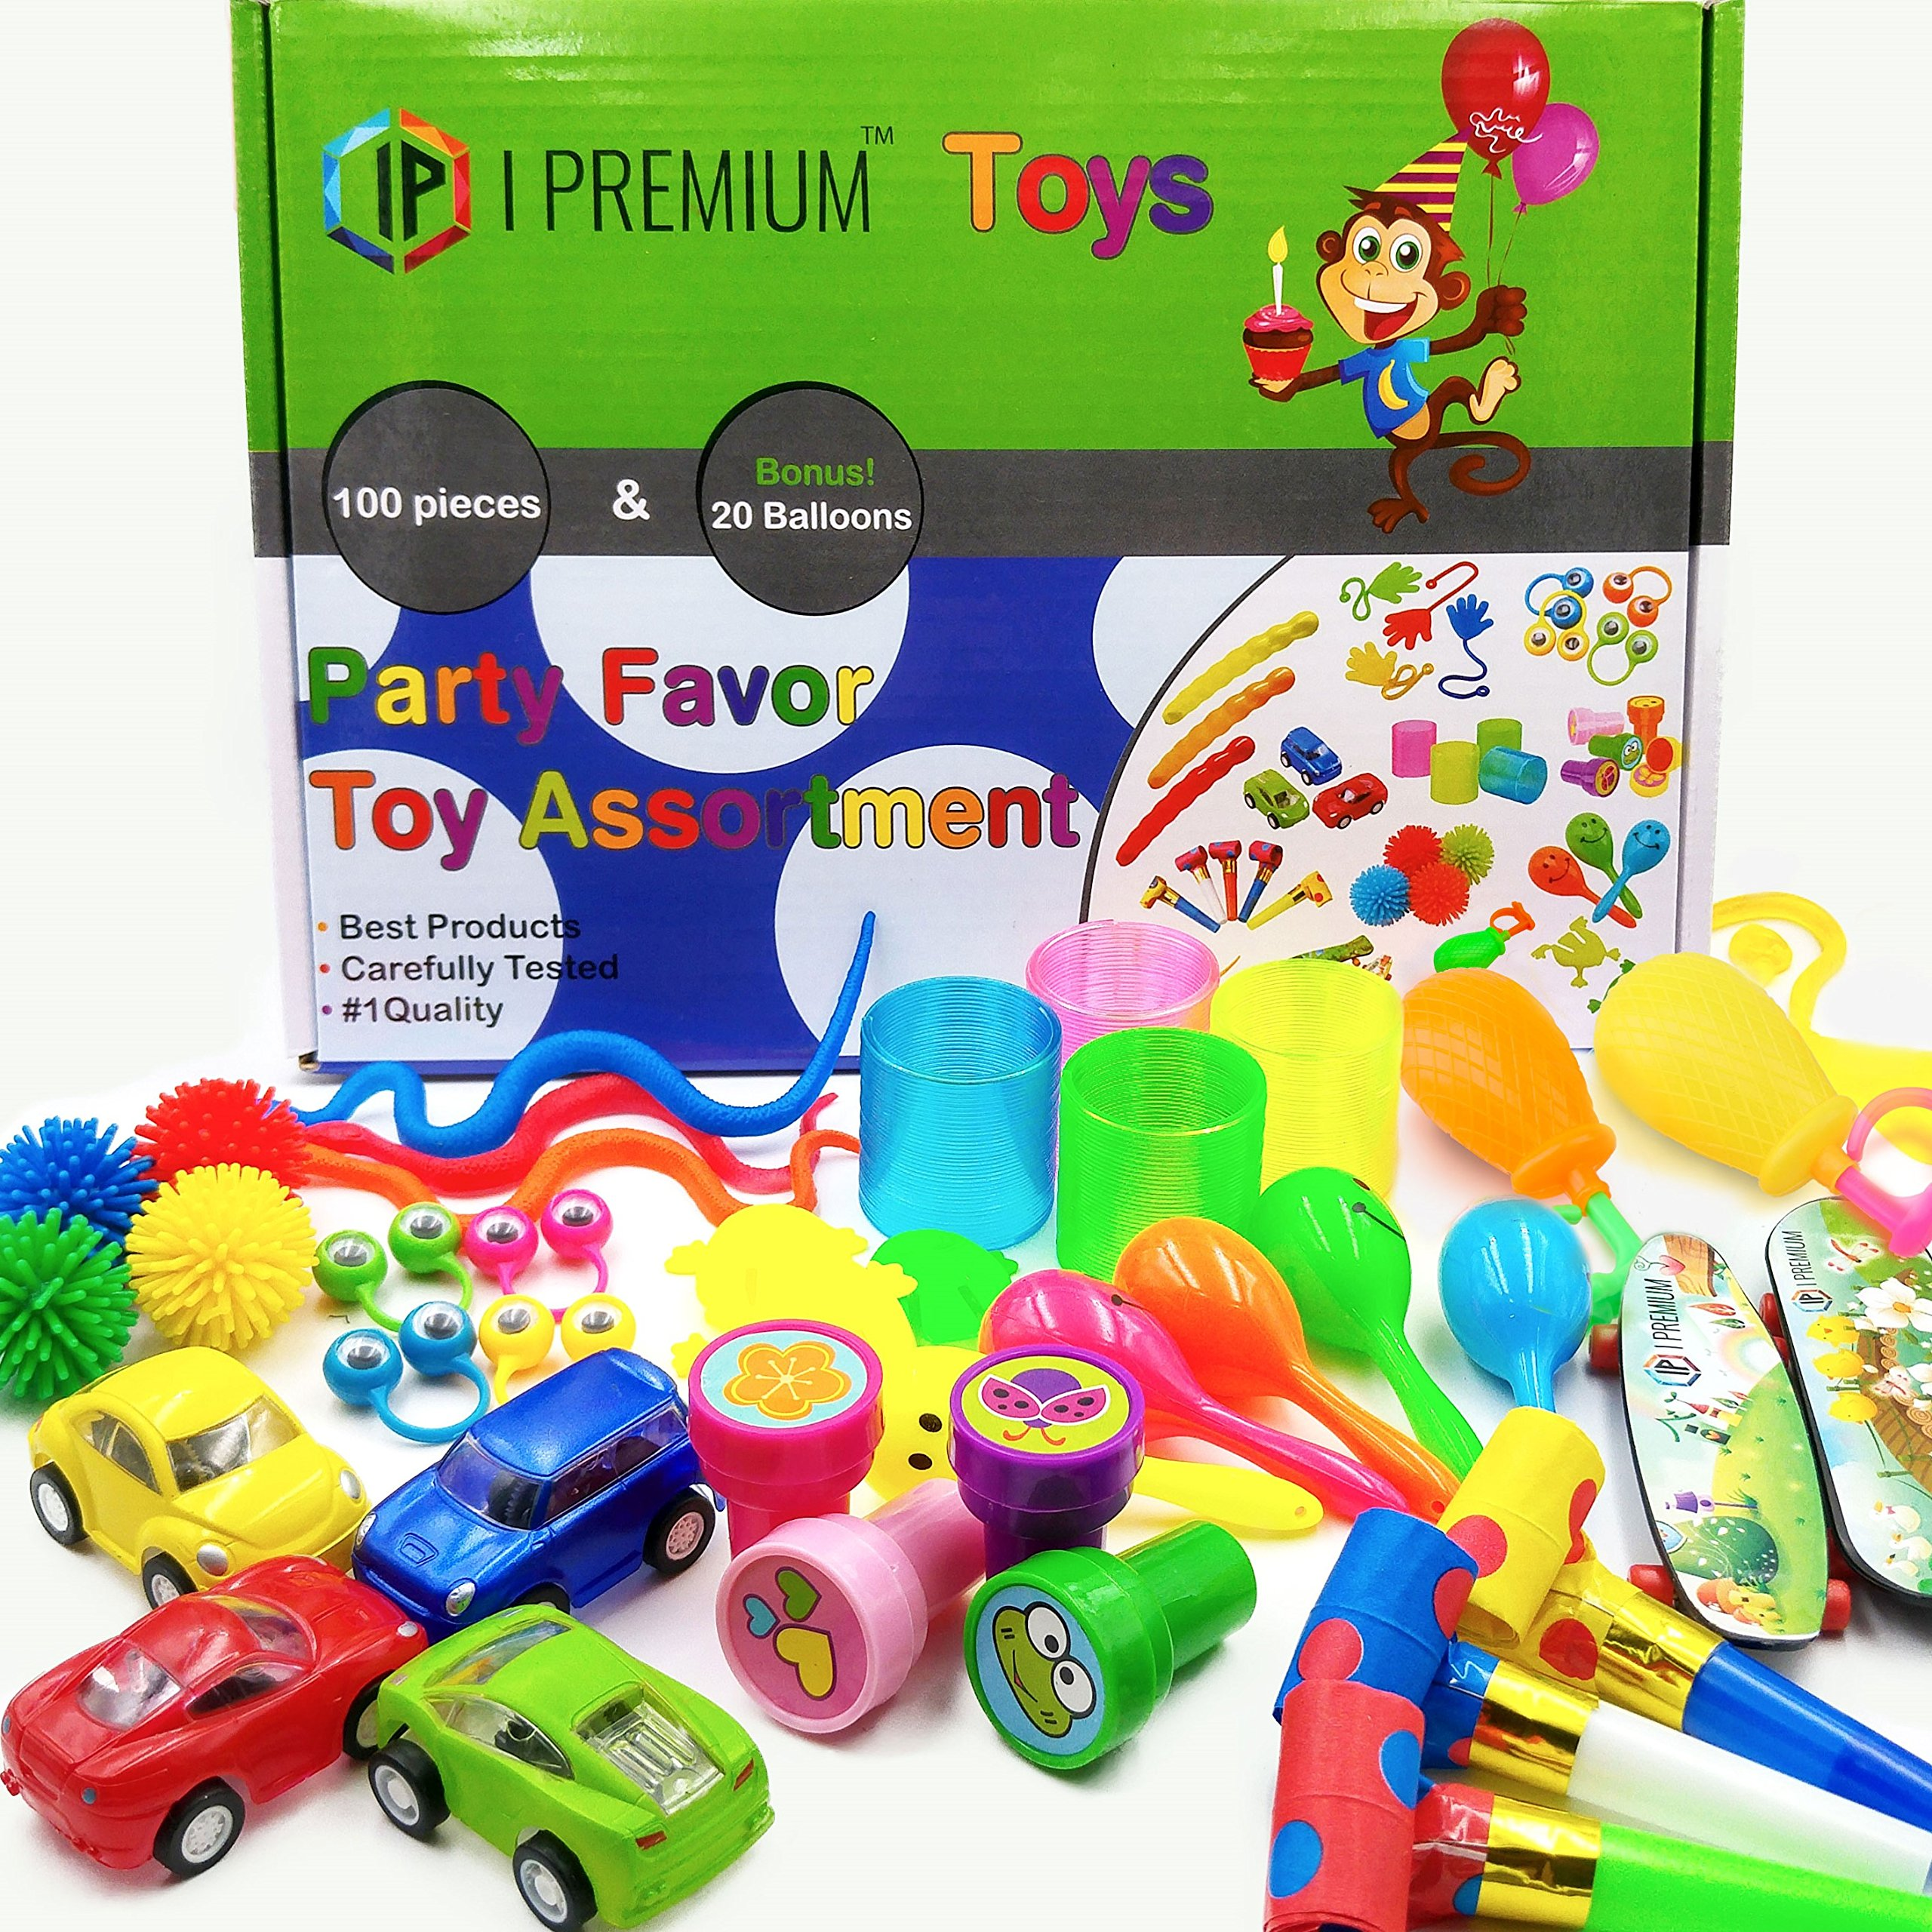 I Premium Party Favor Toy Assortment In Big 120 Pack. Party Favors Kids. Birthday Party , Classroom Rewards, Carnival, Prizes, Pinata Filler, Bulk Toys, Treasure Box, Goodie Bag Fillers